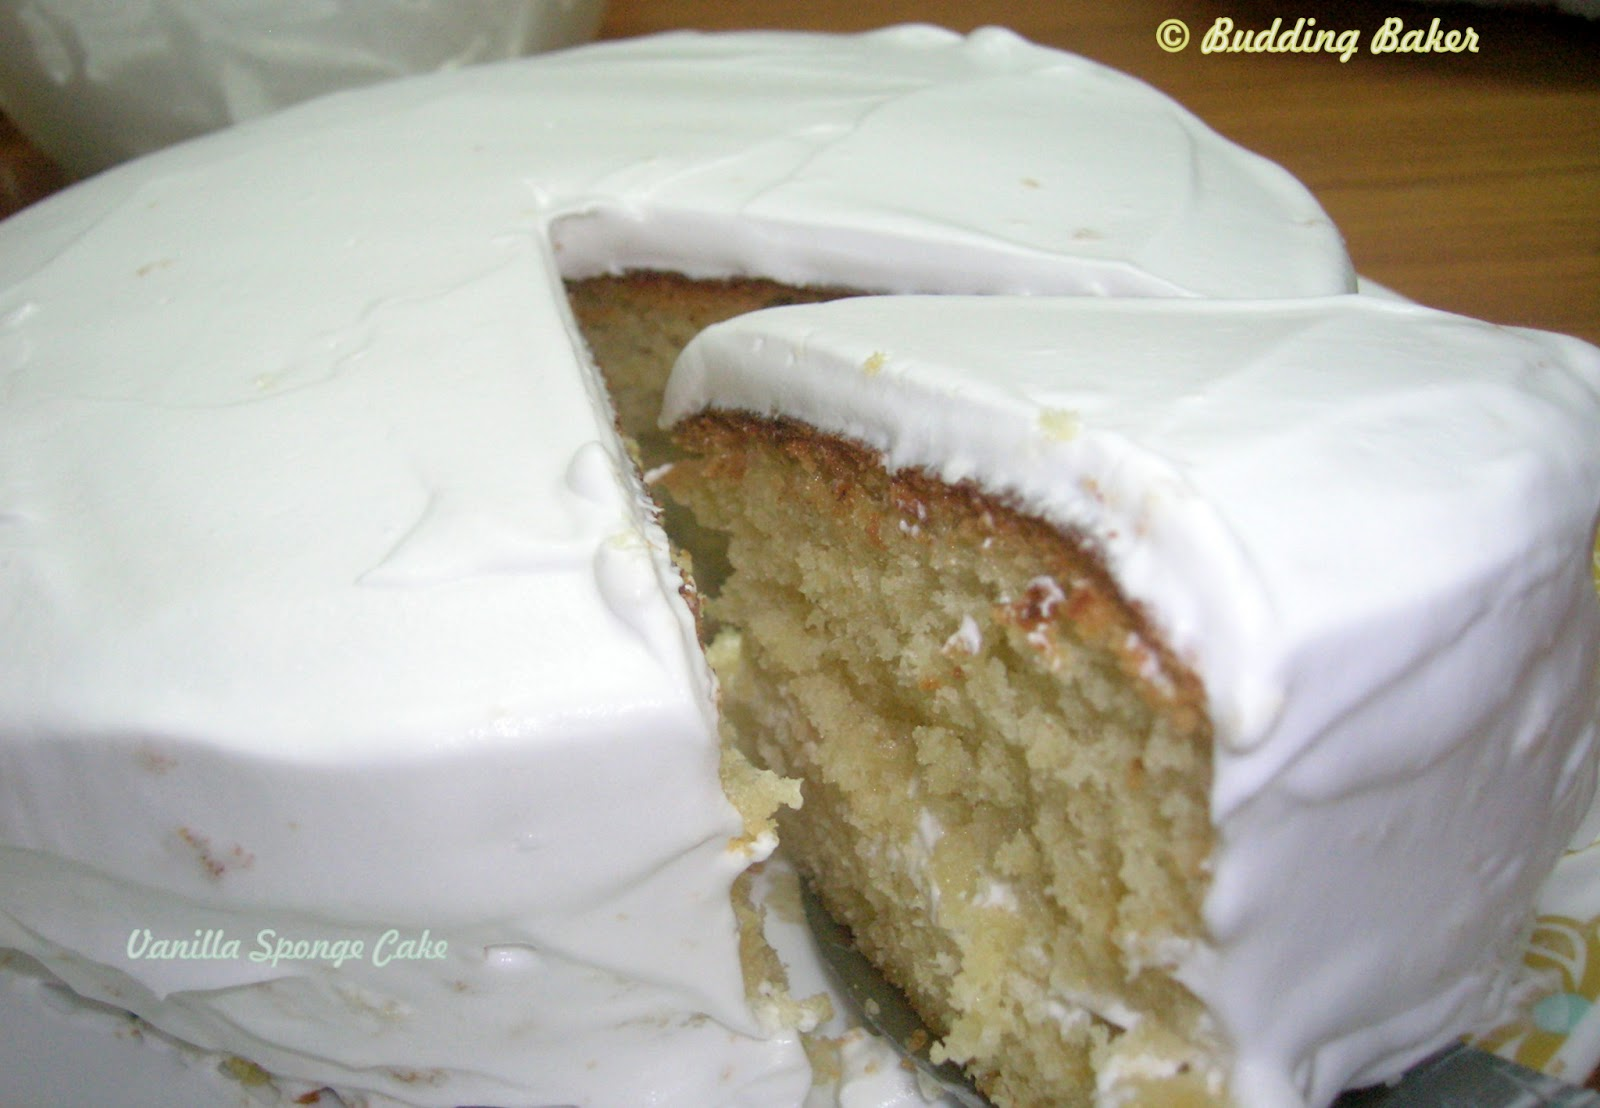 Sponge Cake Recipe With Oil Instead Of Butter